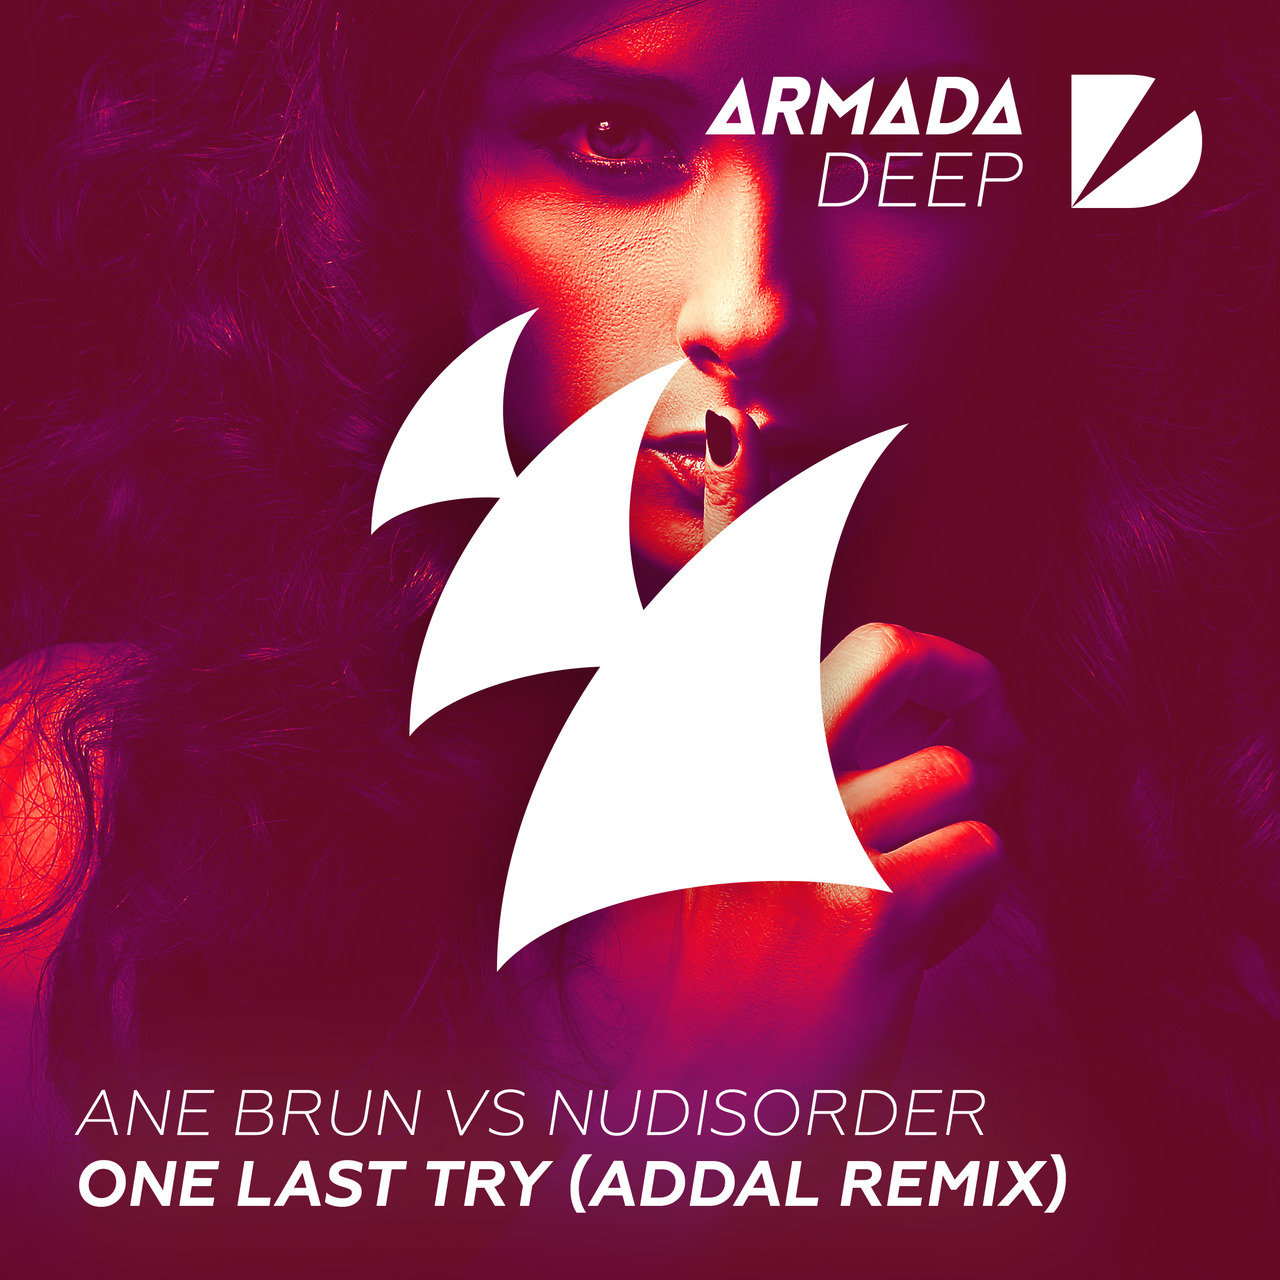 One Last Try (Addal Remix)